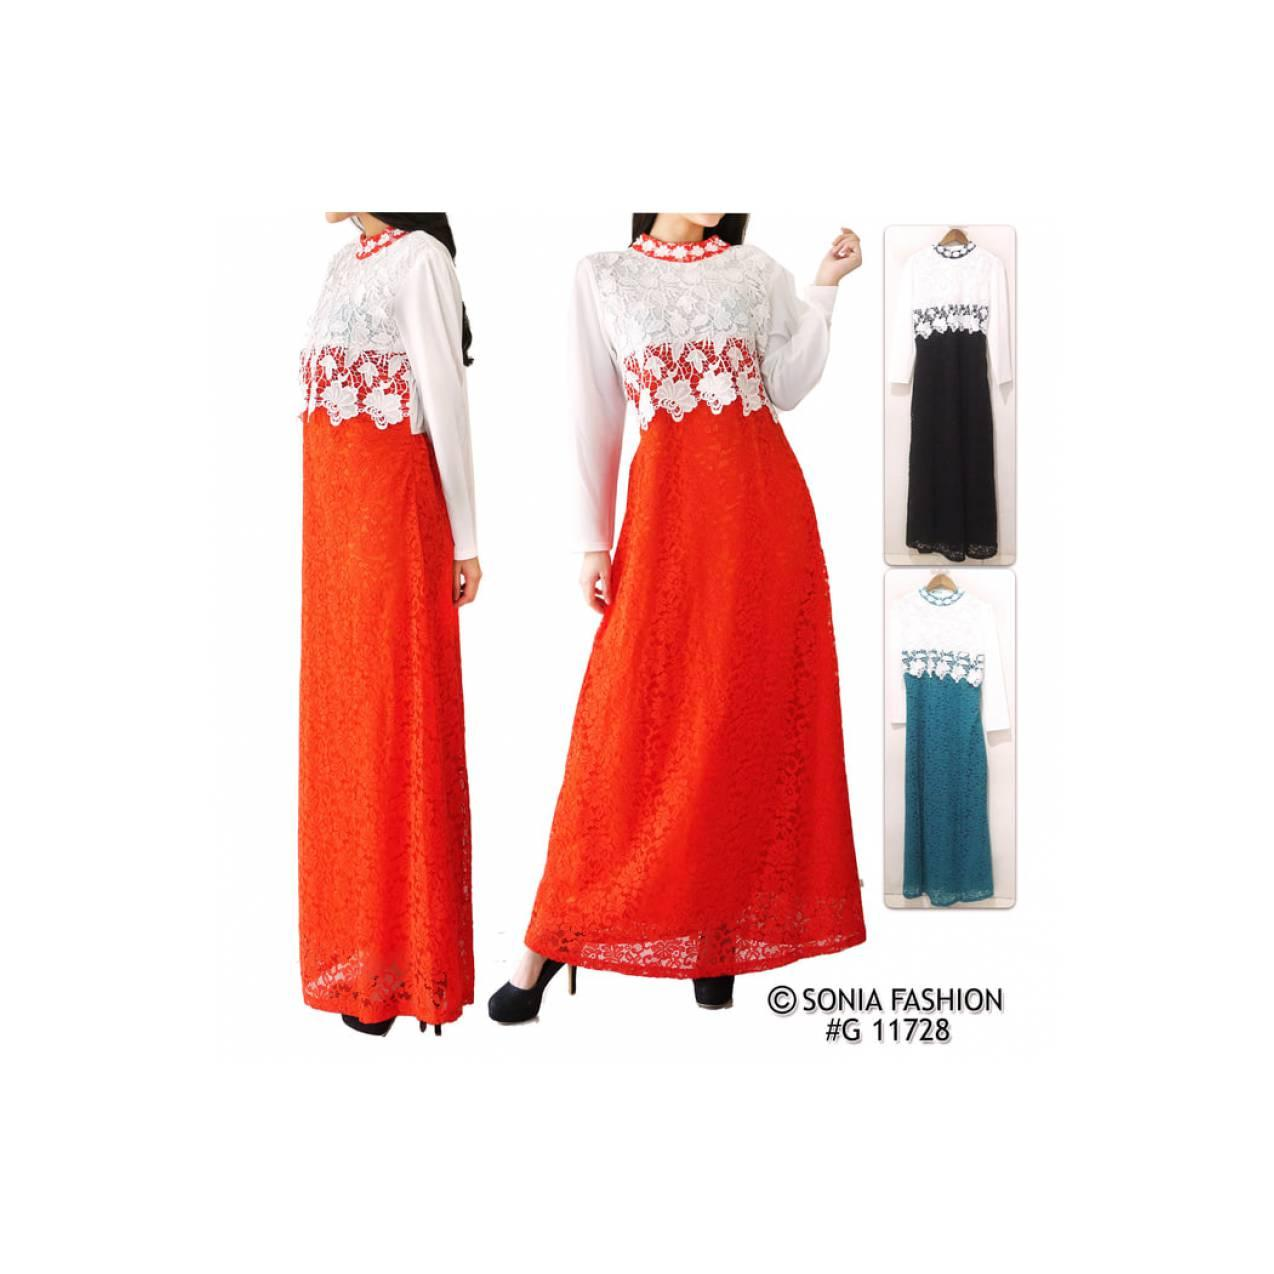 Gamis Maxi Full Brukat Zaskia / Maxi Dress / Lace Dresses / 11728